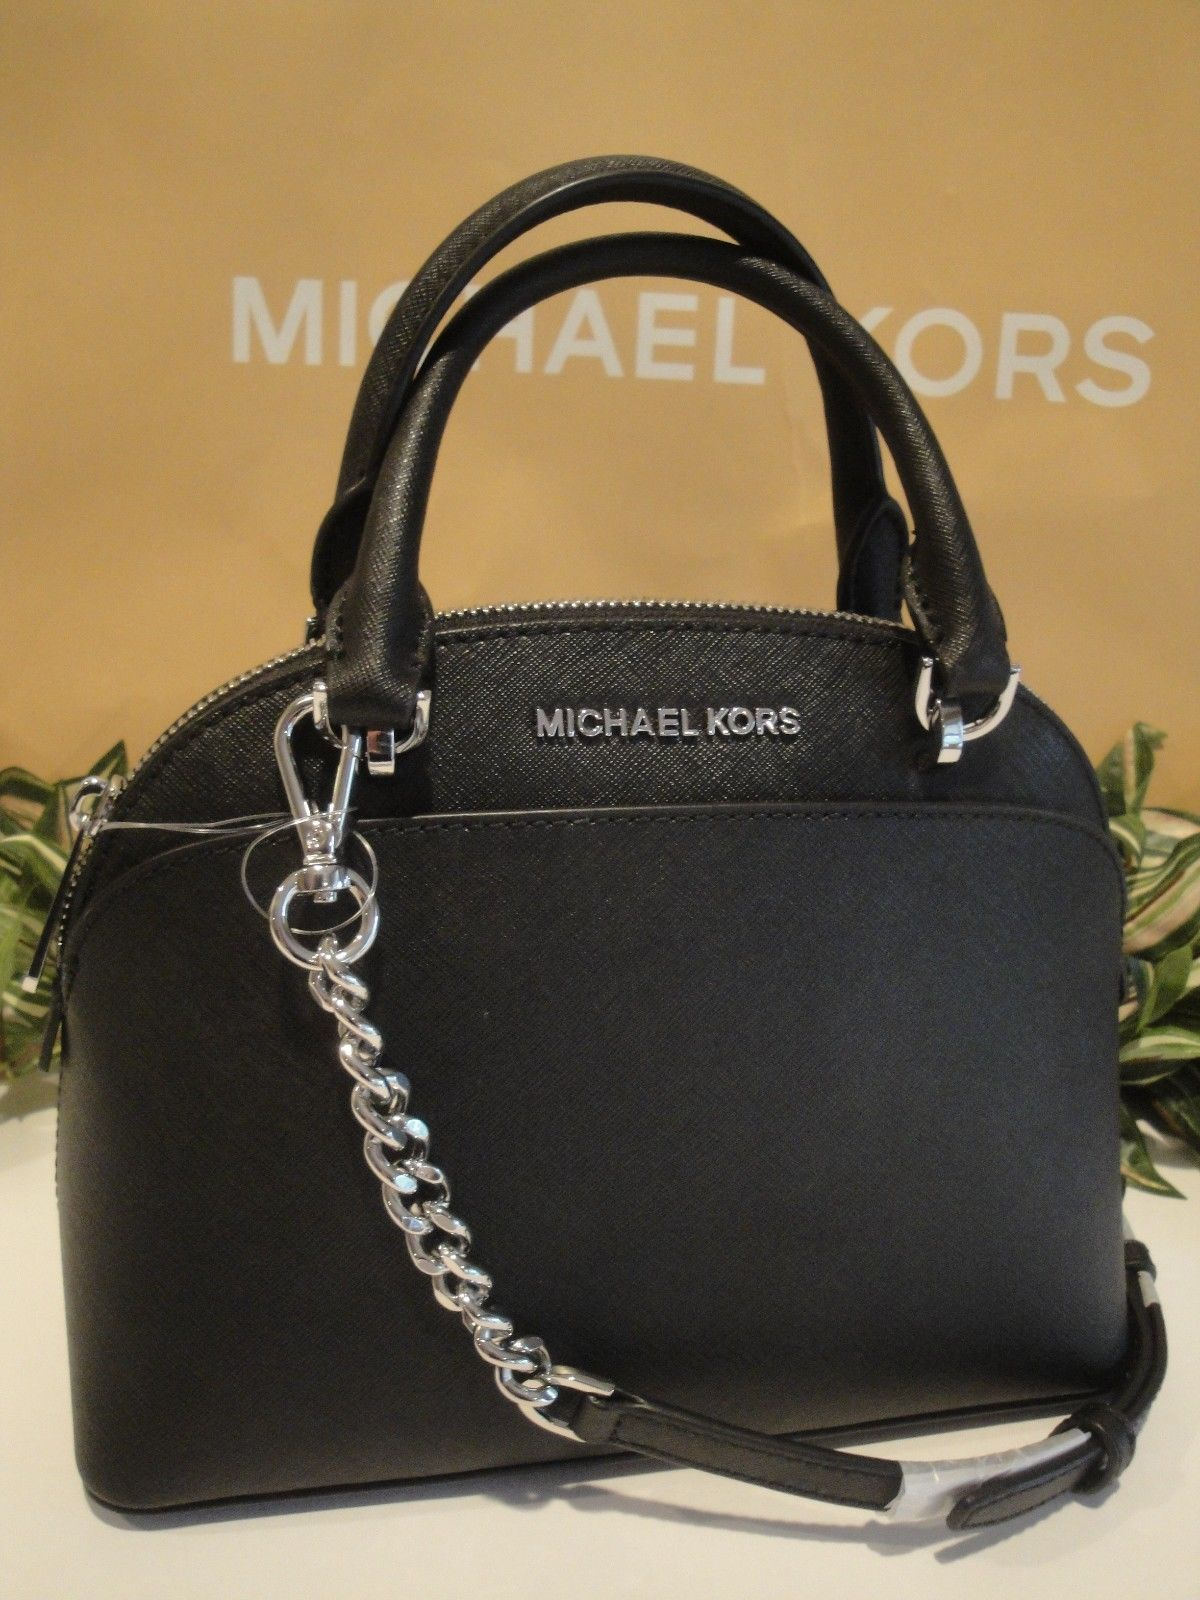 MICHAEL KORS EMMY SMALL DOME SATCHEL CROSSBODY MK BAG LEATHER BLACK SILVER   298 bf51d19ba609b